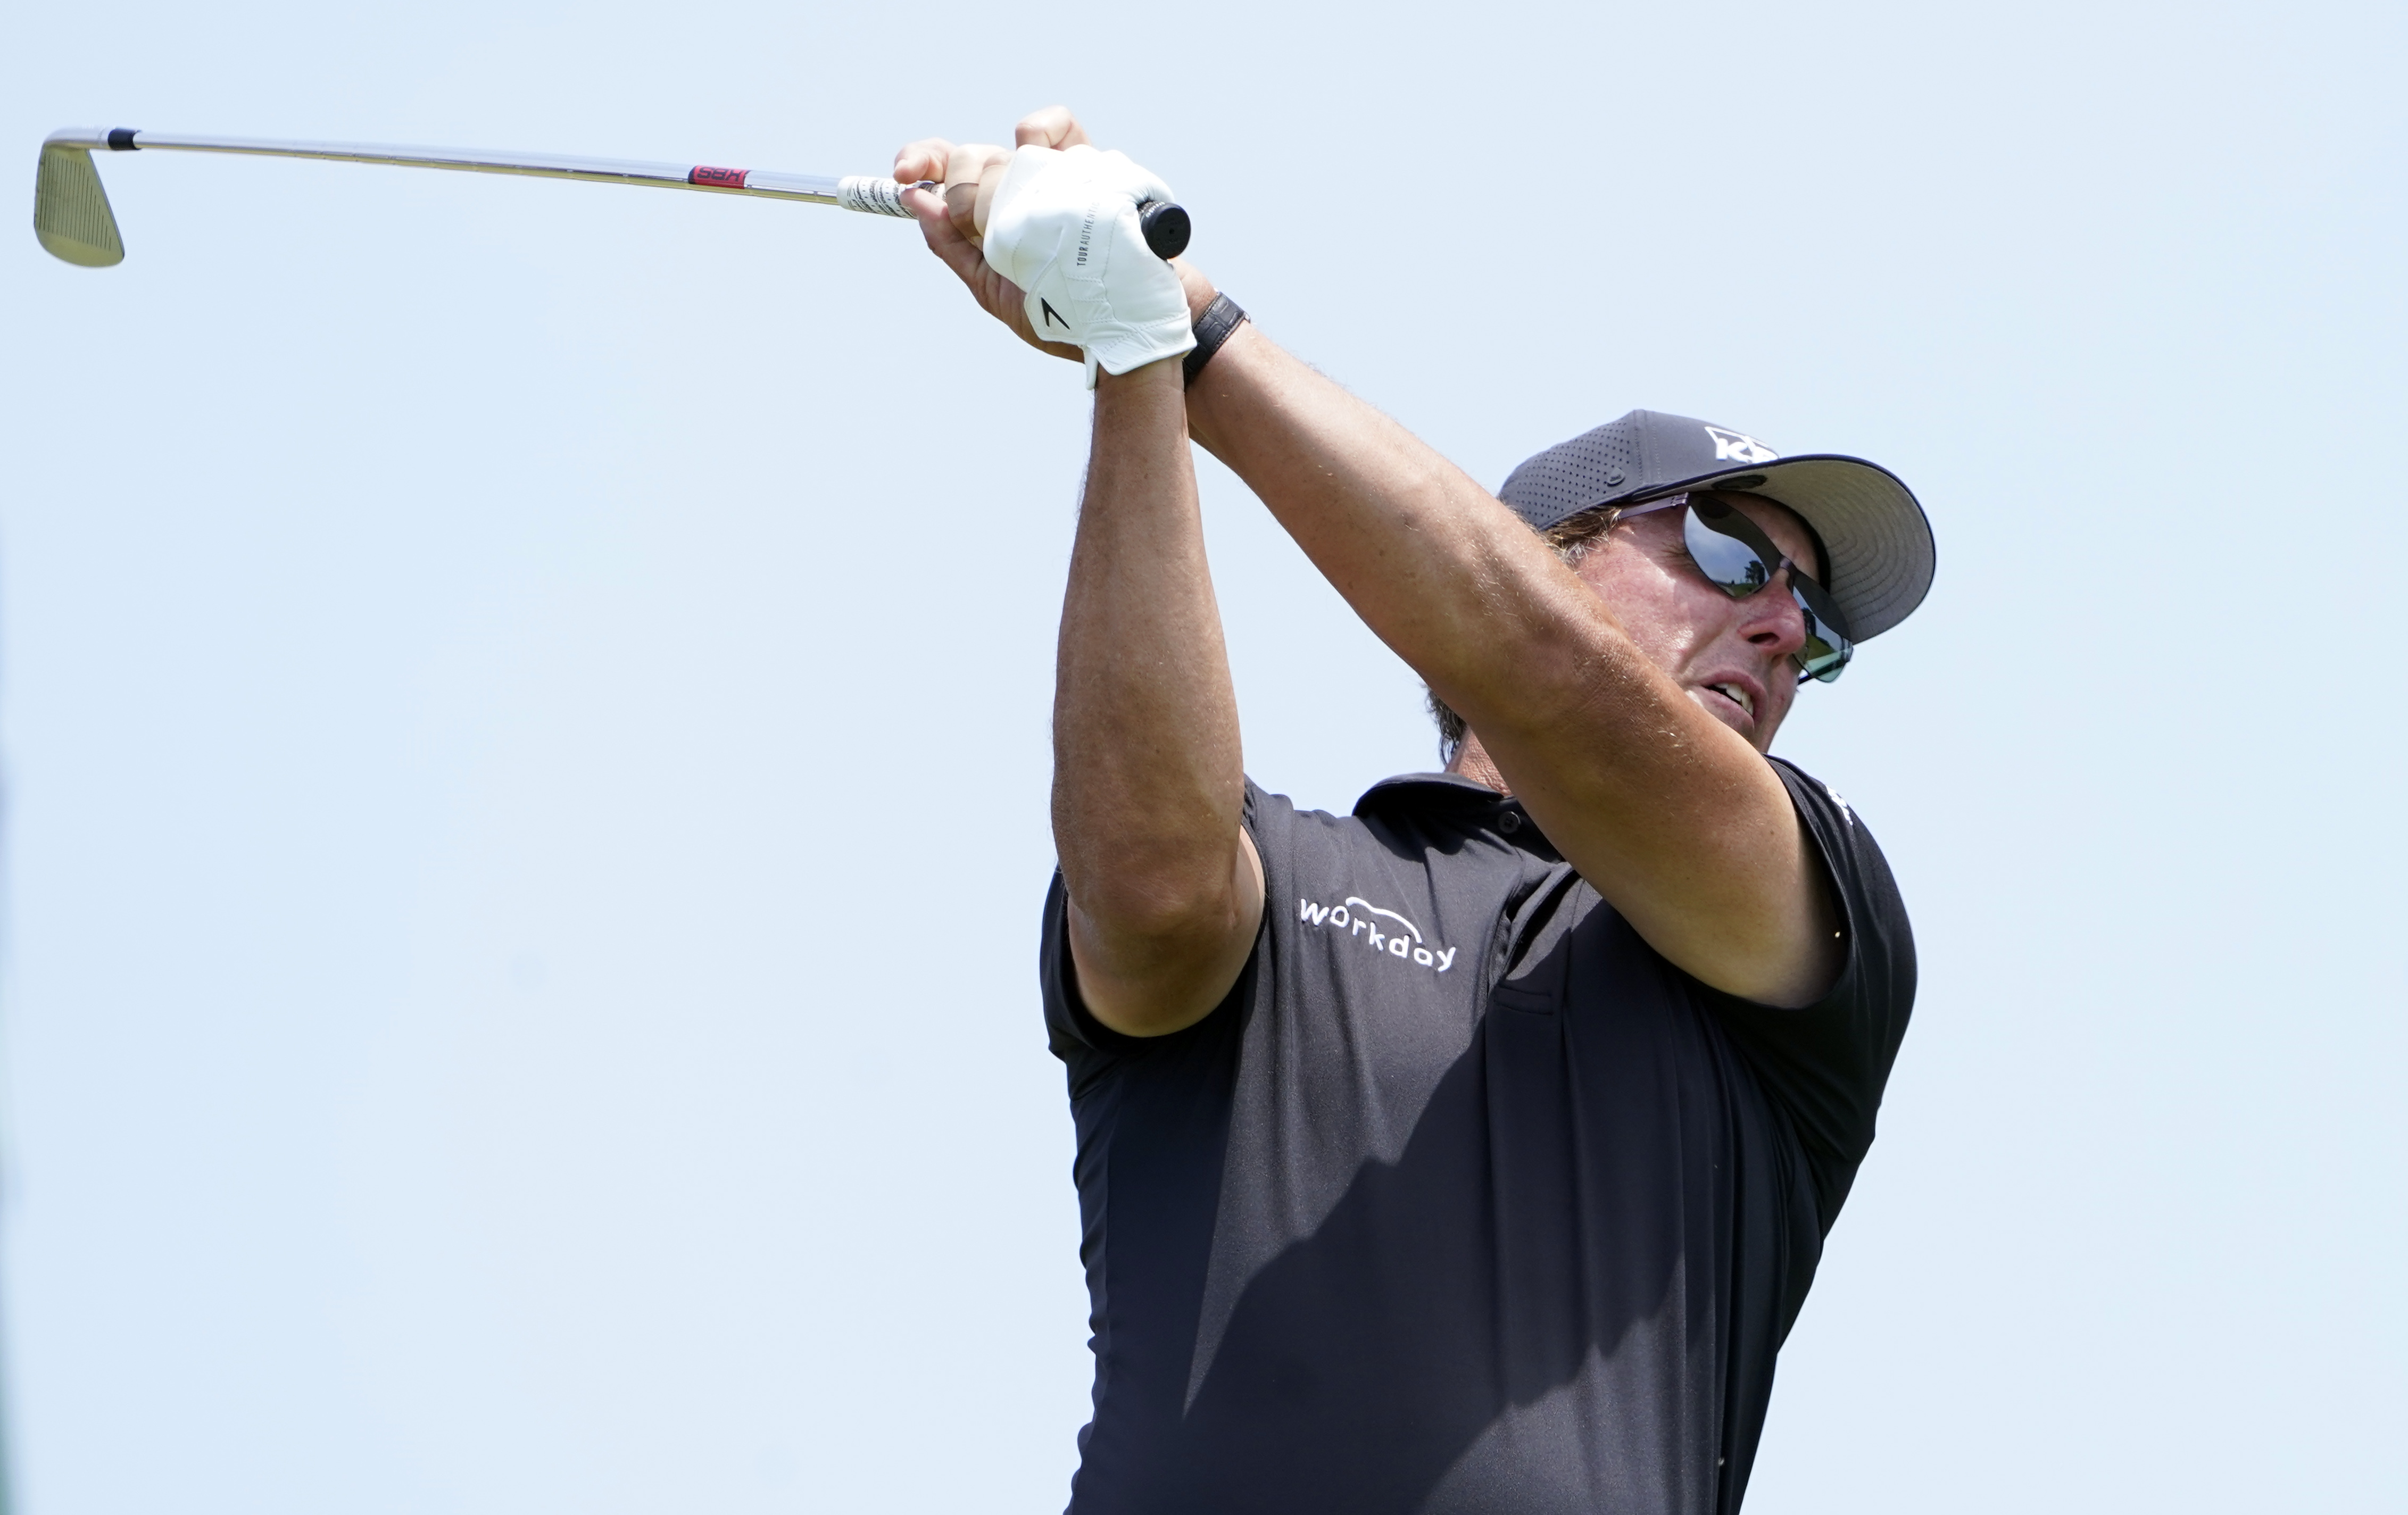 Jun 17, 2021; San Diego, California, USA; Phil Mickelson plays his shot from the third tee during the first round of the U.S. Open golf tournament at Torrey Pines Golf Course. Mandatory Credit: Michael Madrid-USA TODAY Sports